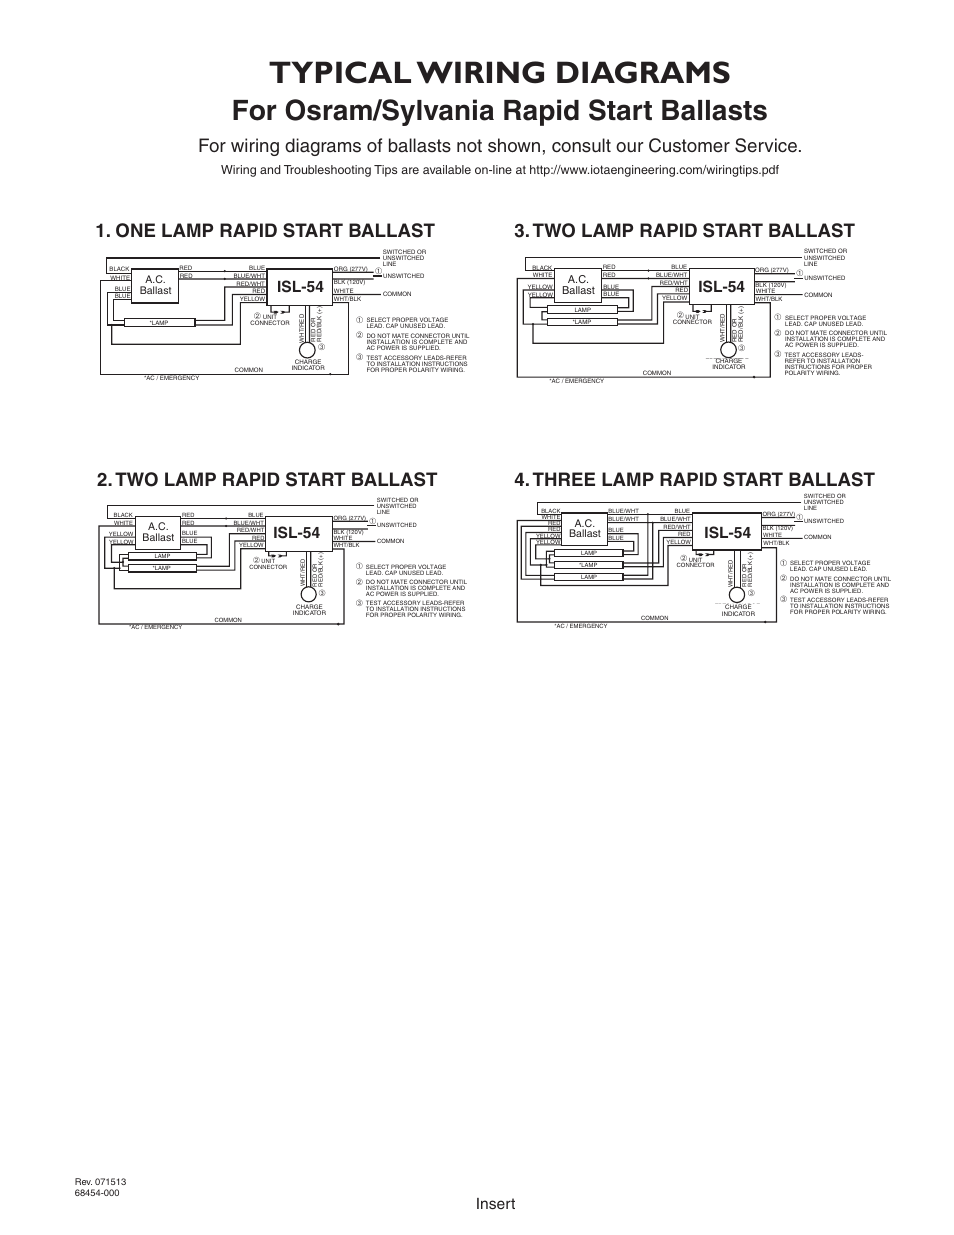 Typical Wiring Diagram 4 Lamp Ballast Explained Diagrams Isl 54 Emergency Residential Electrical 2